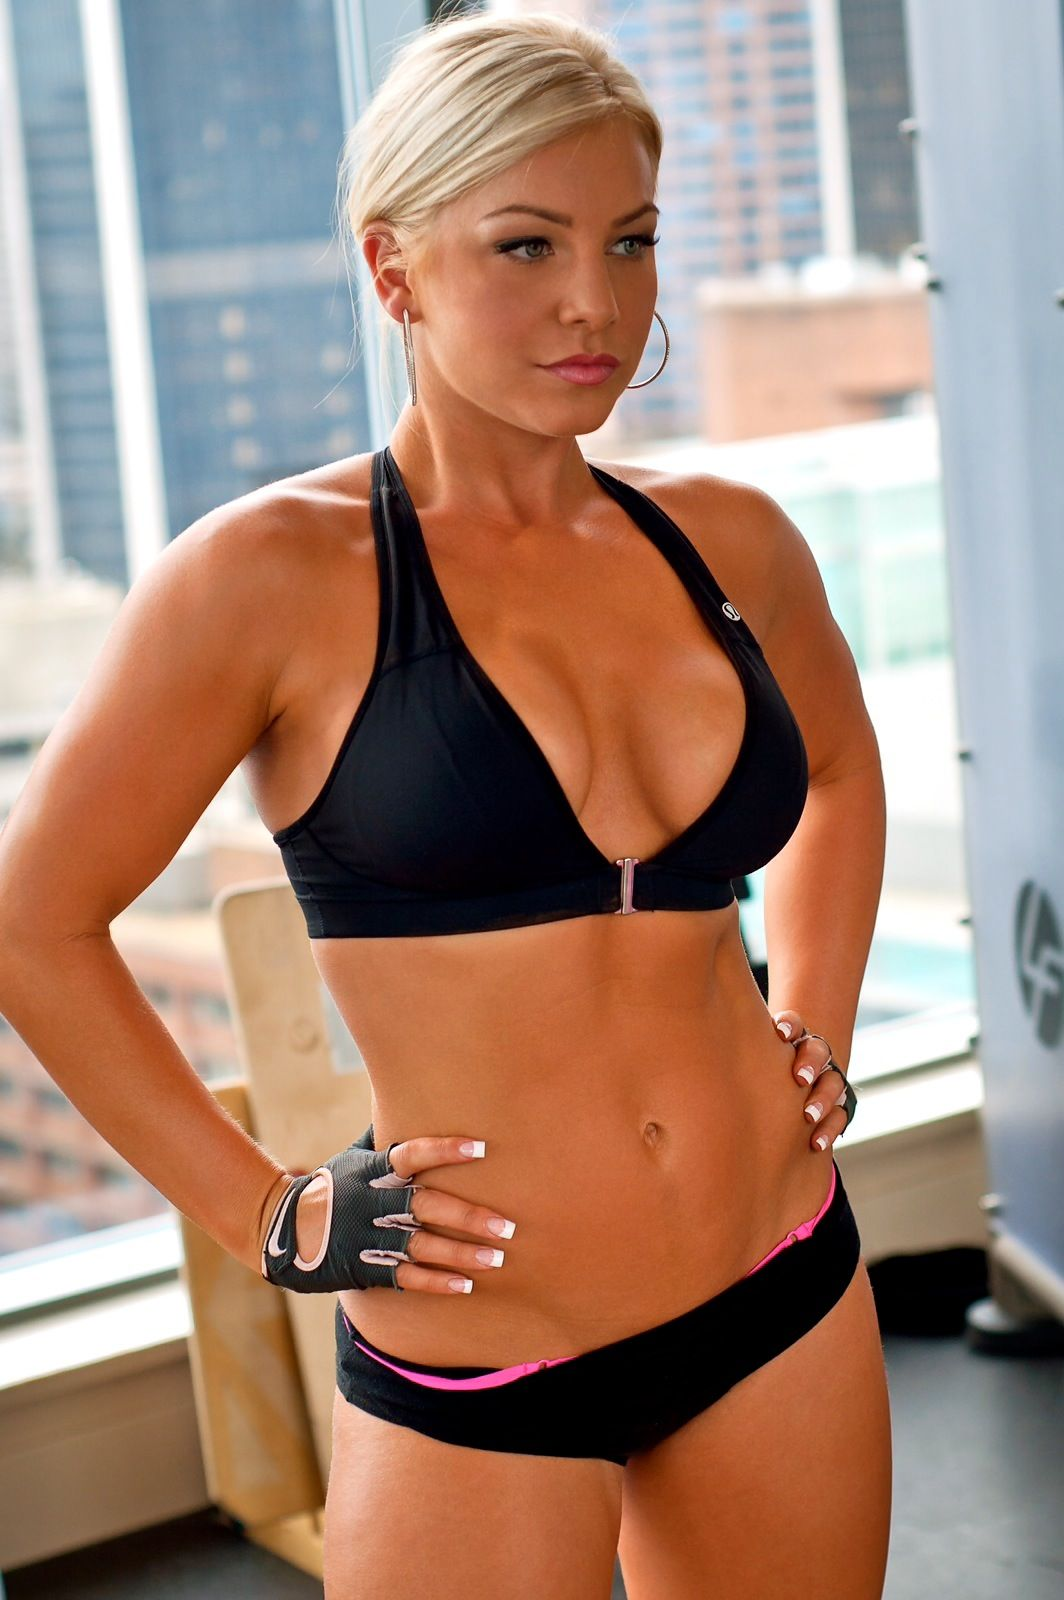 Ann nasty sexy fitness babes